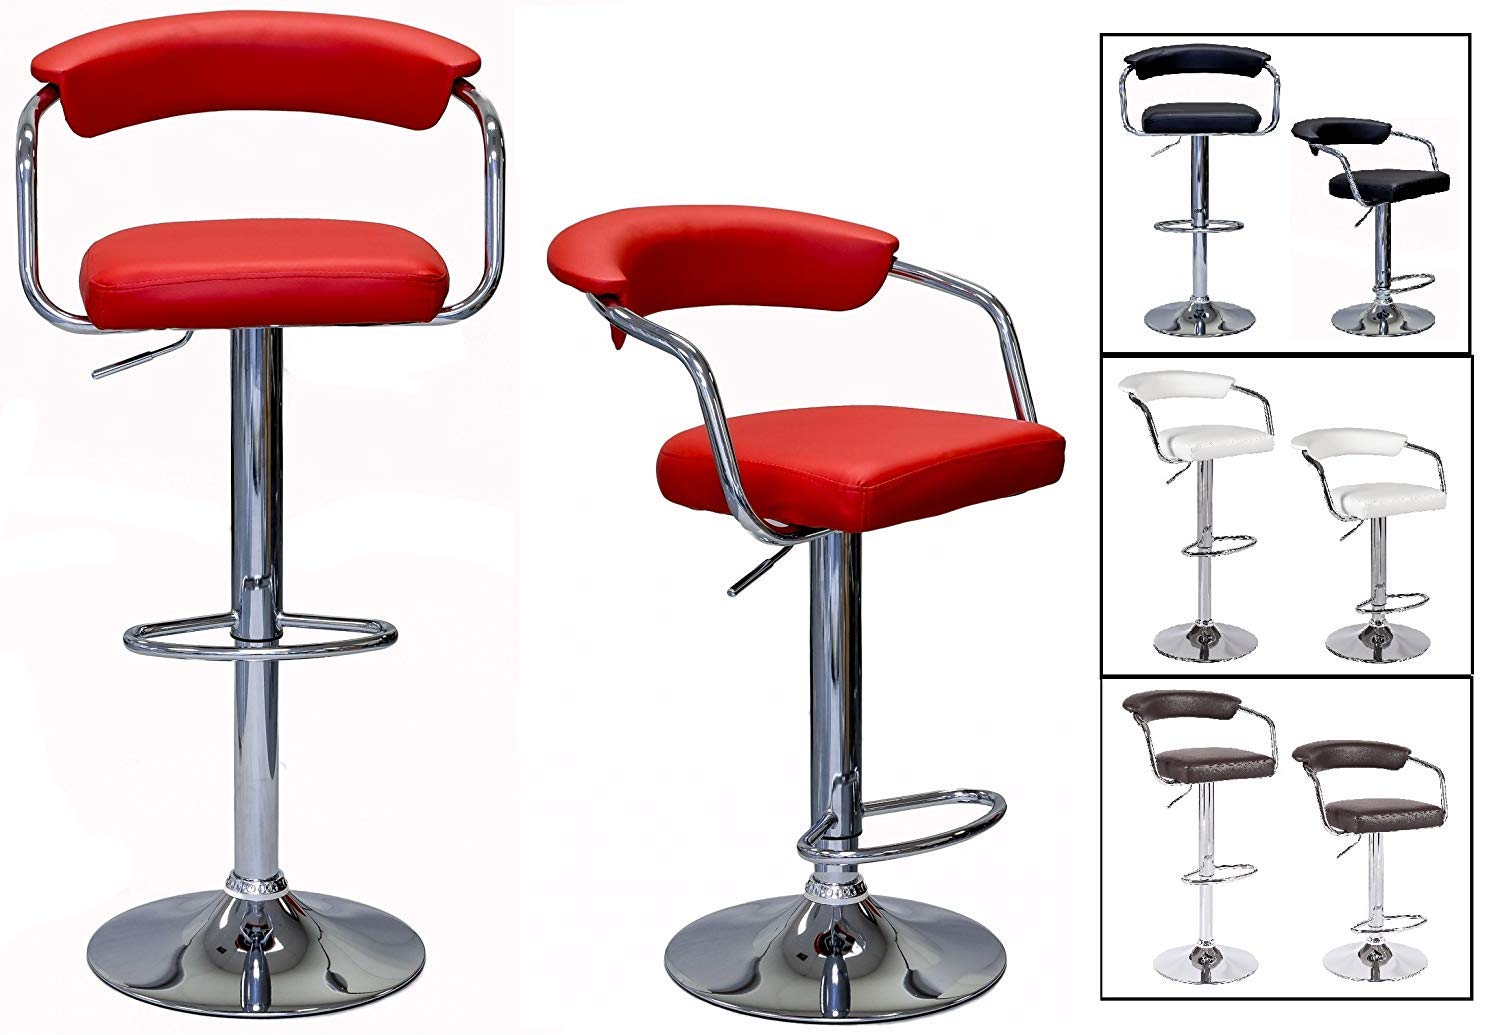 Candy Red Set of 2 Stools SavingBig Series CRESCENT Height Adjustable Leatherette Seat /& Elevated Back Rest 360 Swivel 24 to 33 inch Bar Stool with Chrome Armrest Pole /& Base installed with Floor Protection Hard Plastic